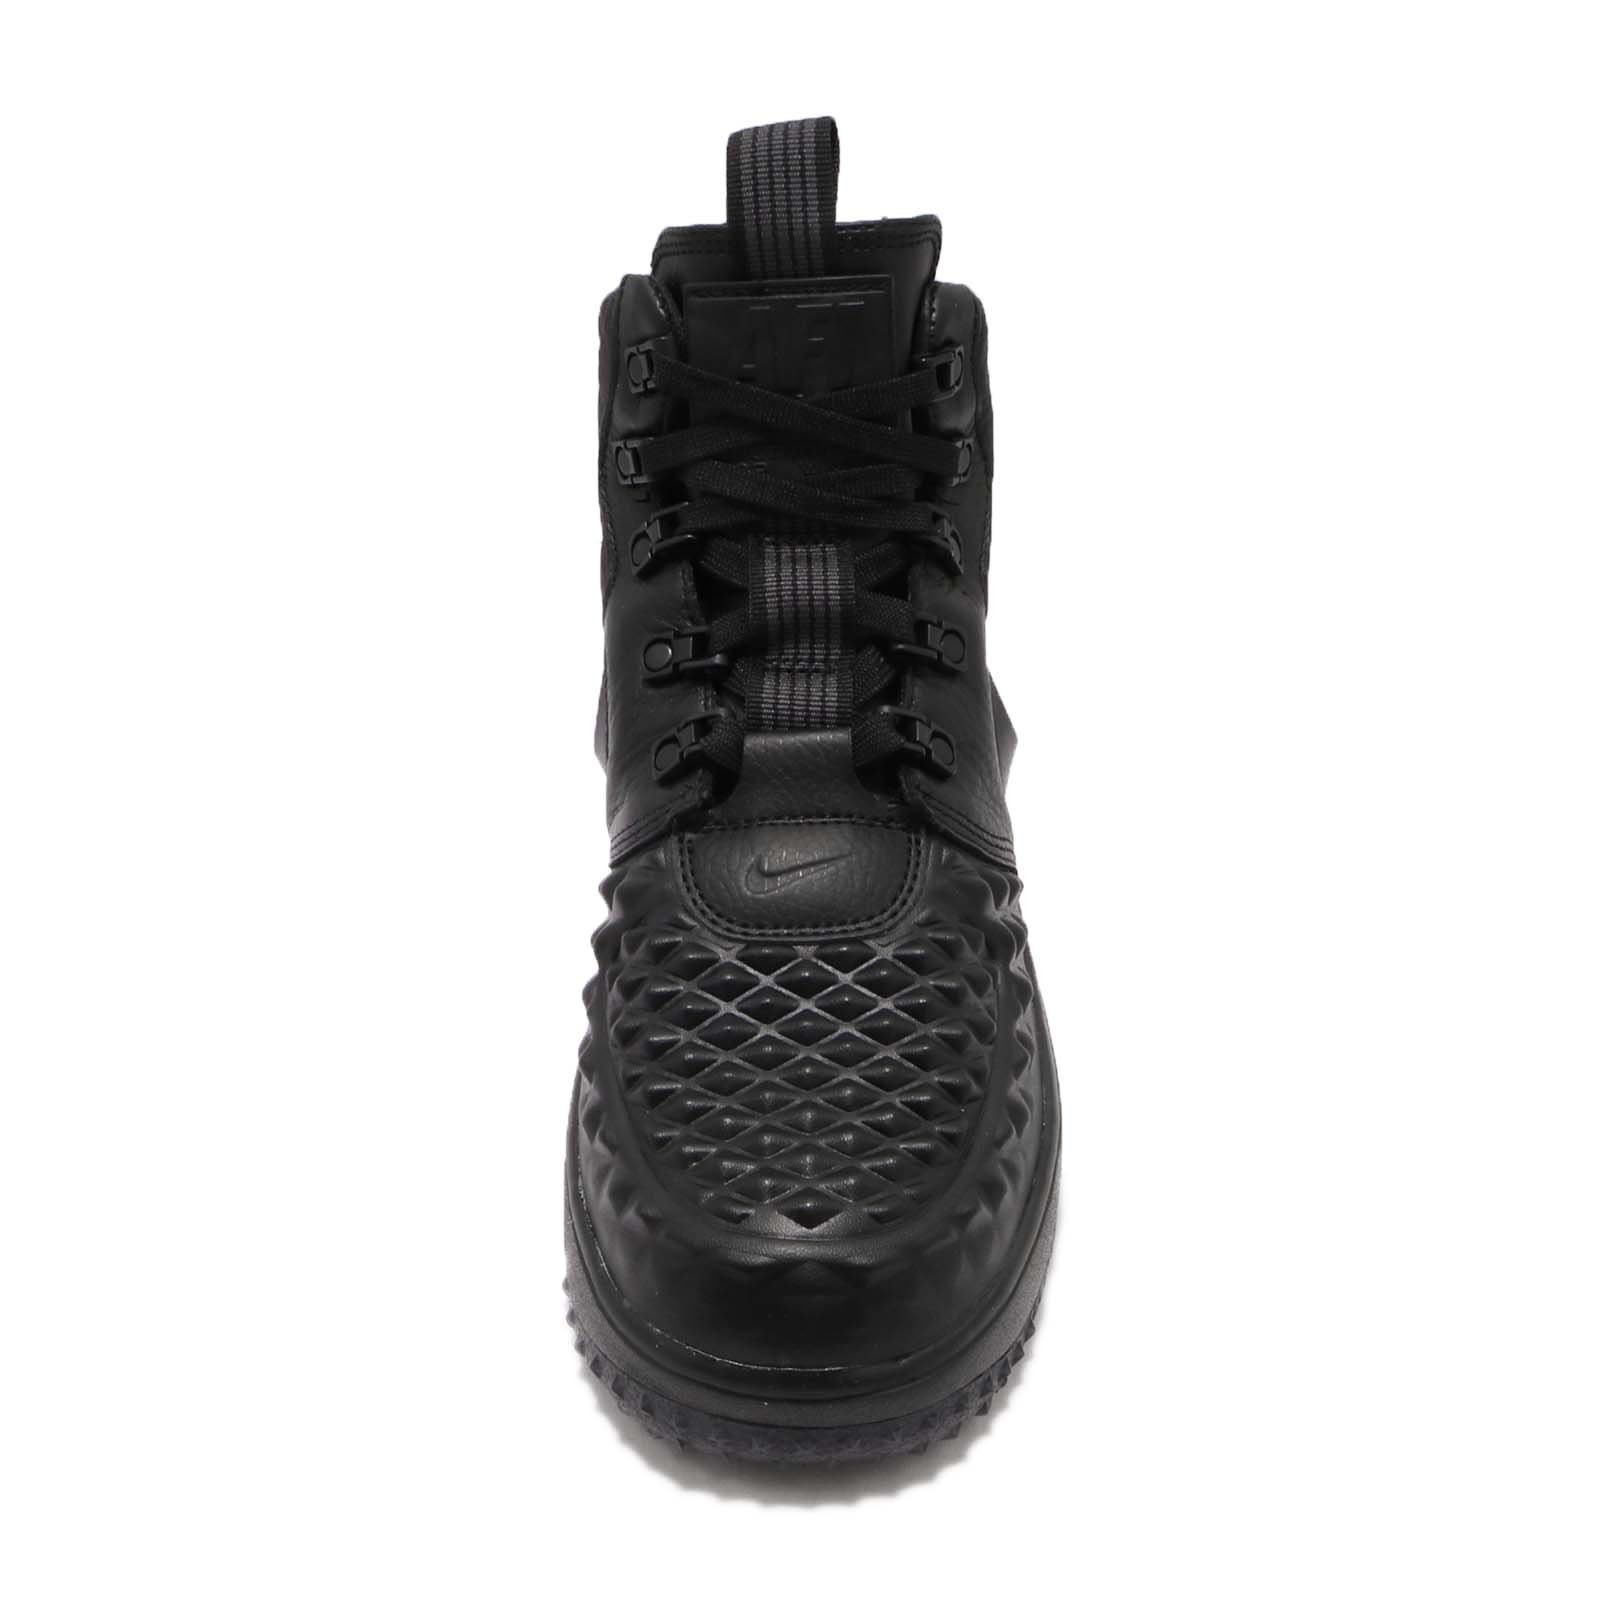 Nike Kid's LF1 Duckboot 17 GS, Black/Black-Anthracite, Youth Size 3.5 by Nike (Image #5)